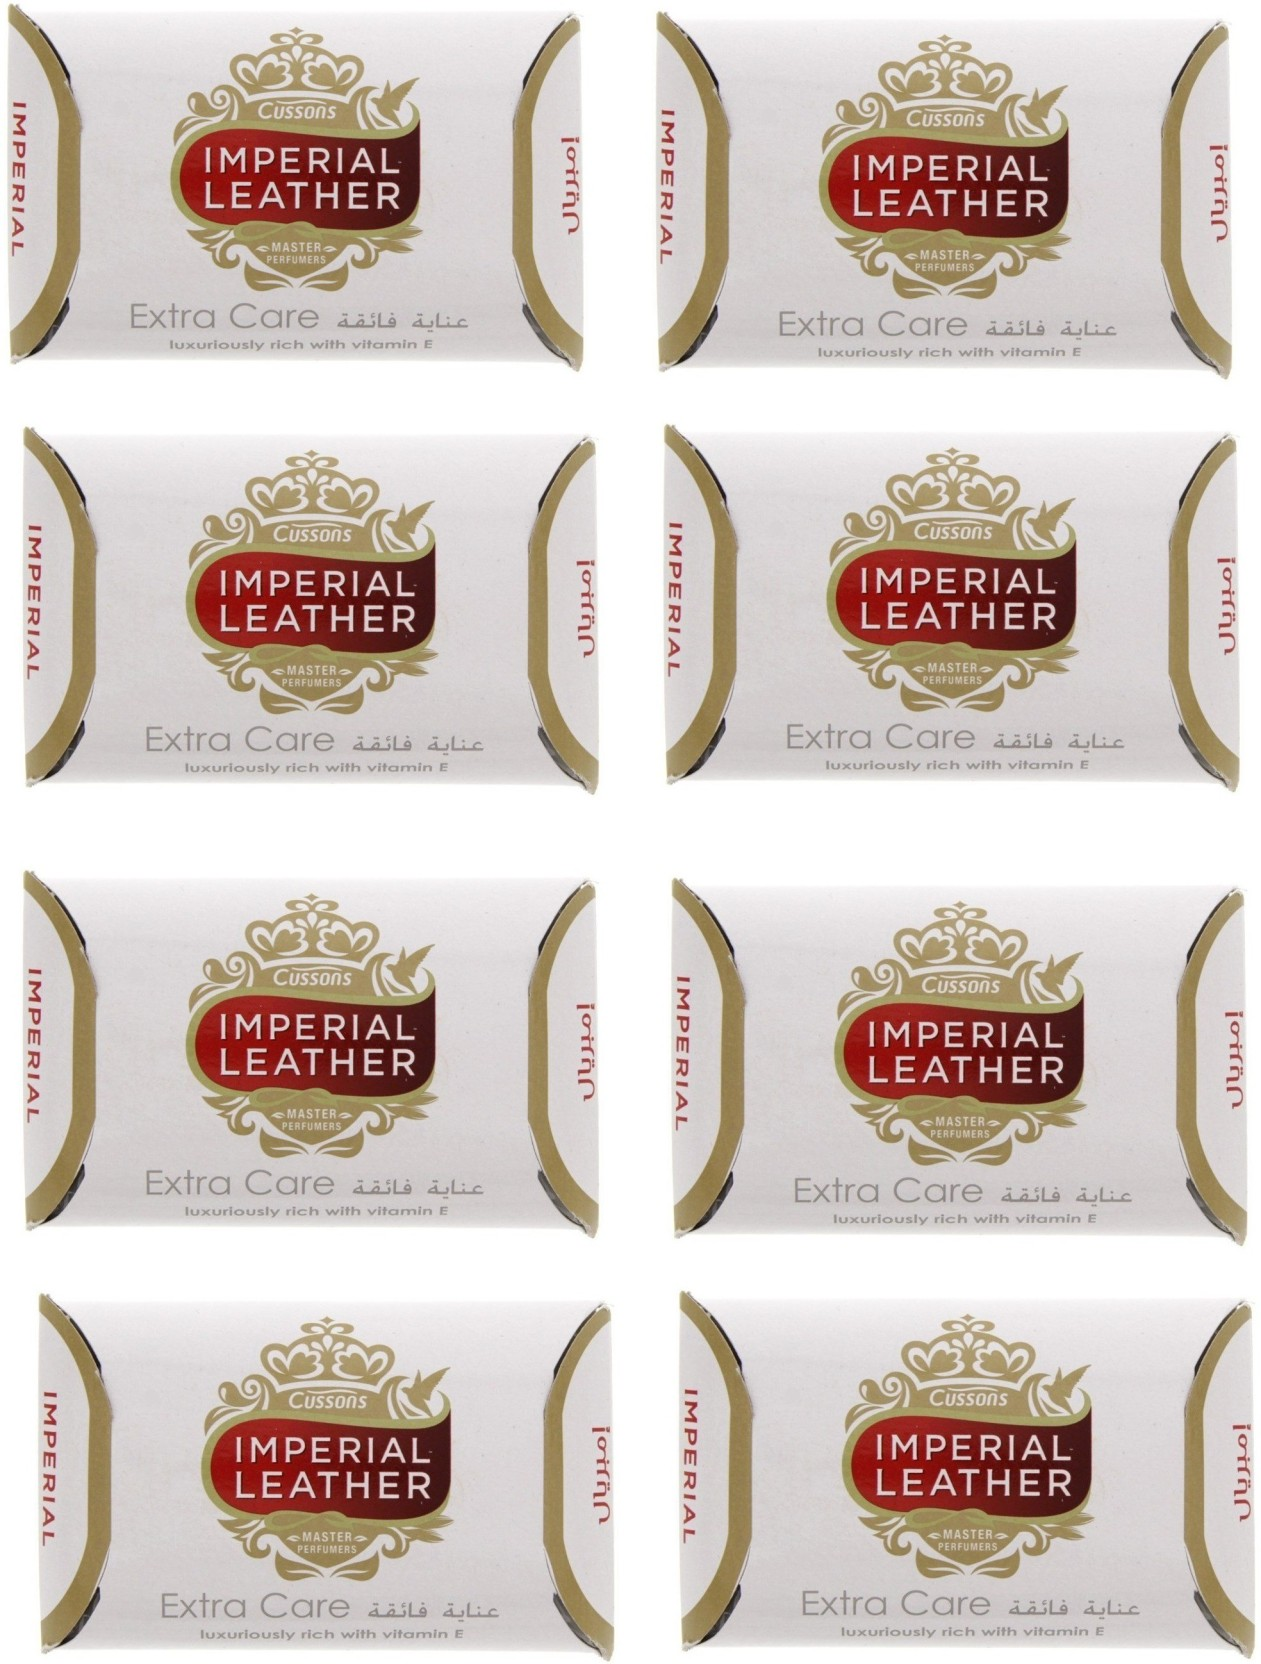 Imperial Leather Imported Extra Care Bath Soap Bar Price Body Add To Cart